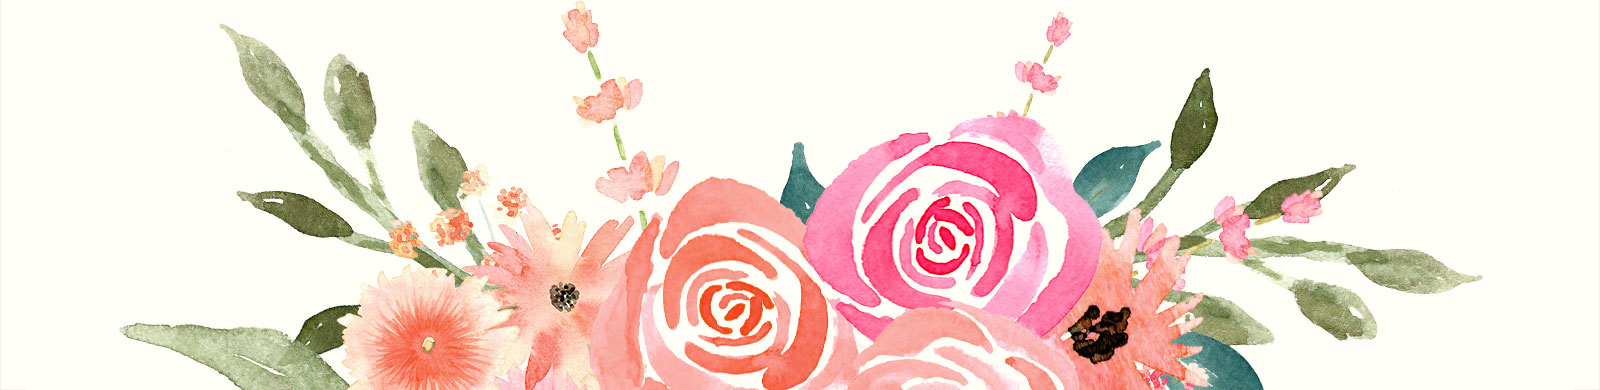 Watercolor Florals for graphic design